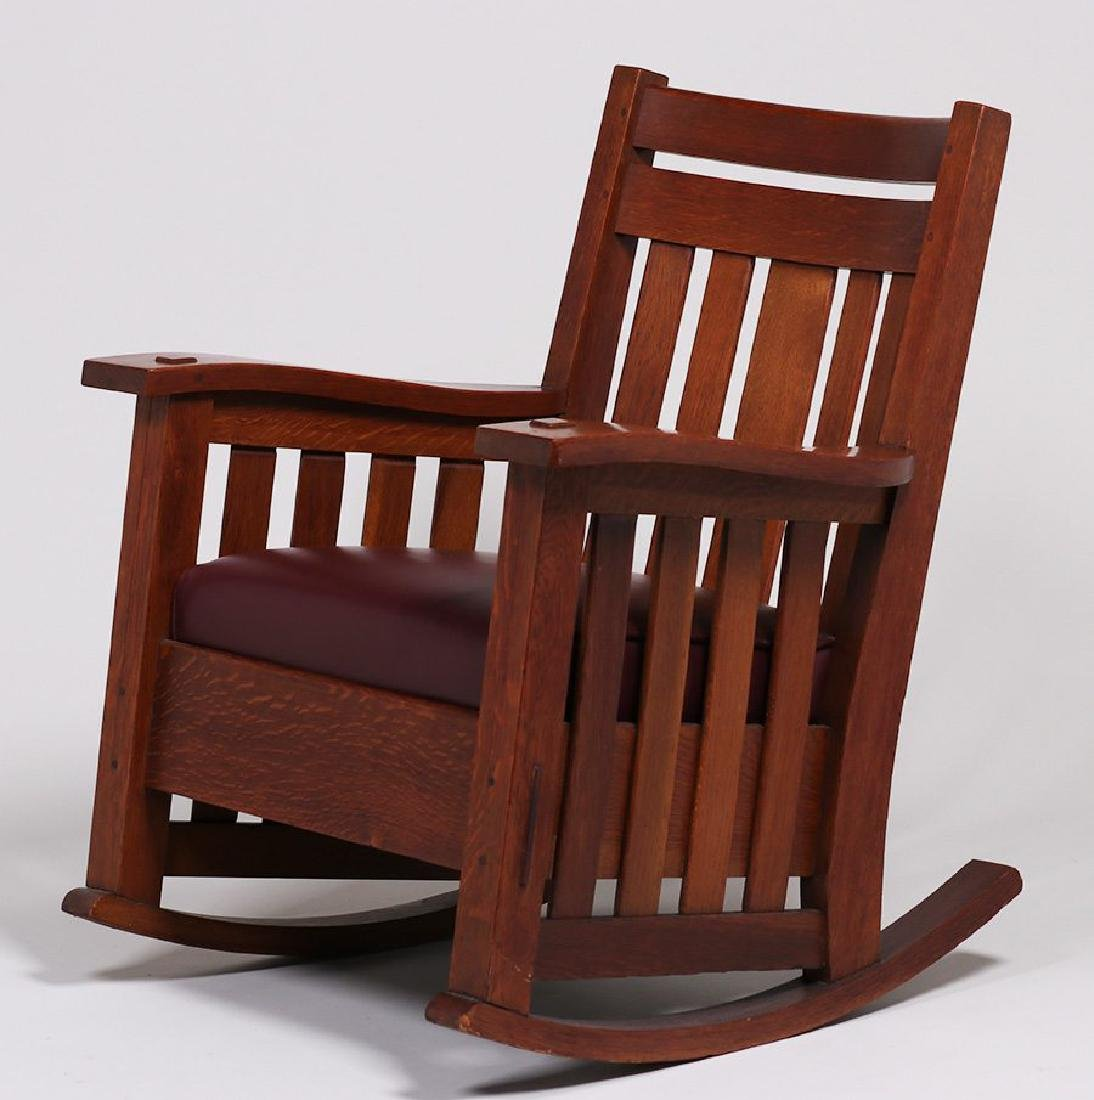 Harden Furniture Co Rocker (Match to Lot 184)